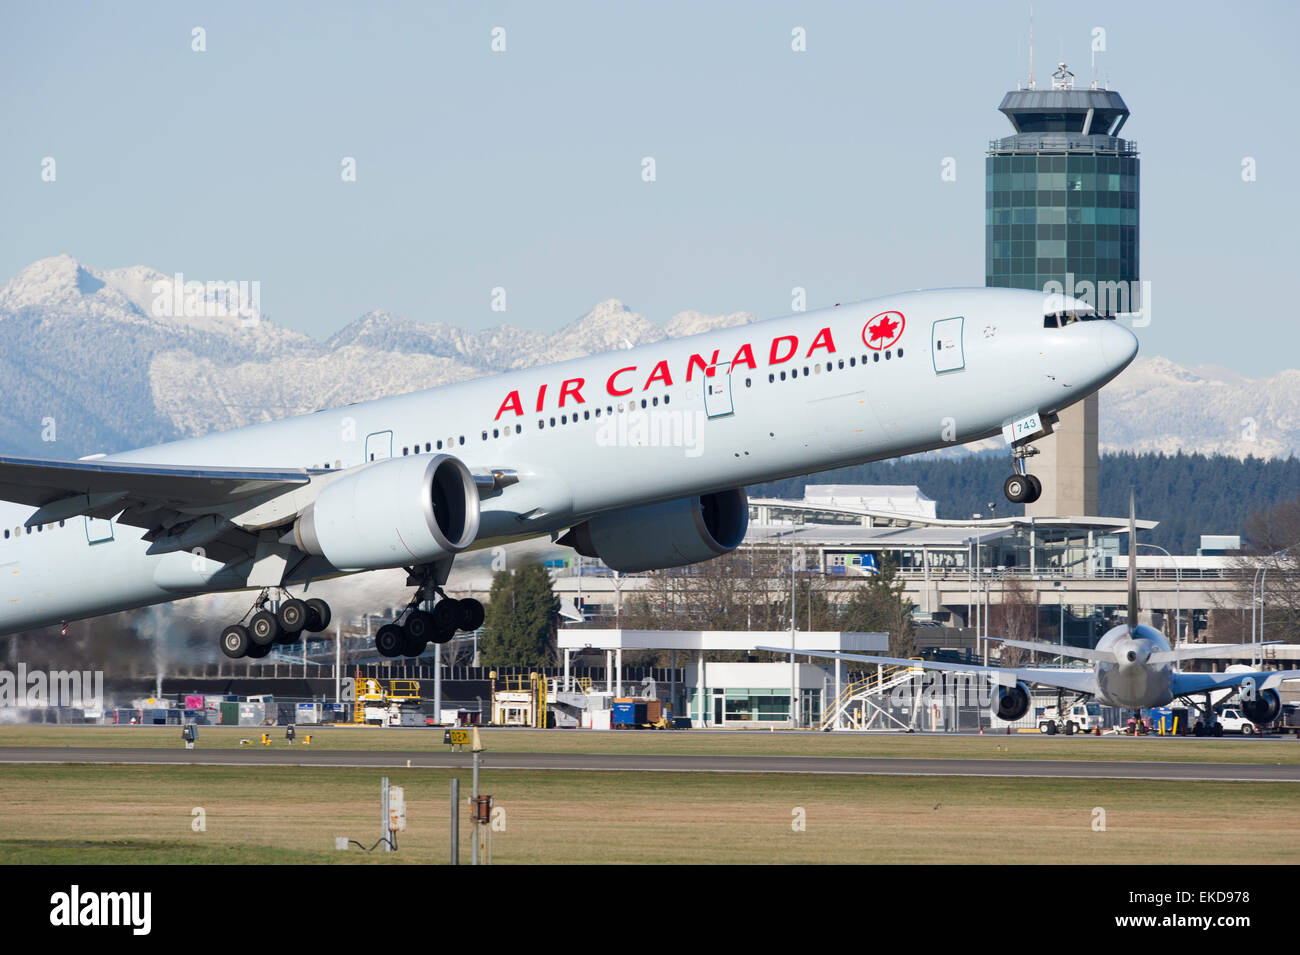 Air Canada Boeing 777-333 ER on takeoff at YVR Vancouver International Airport - Stock Image